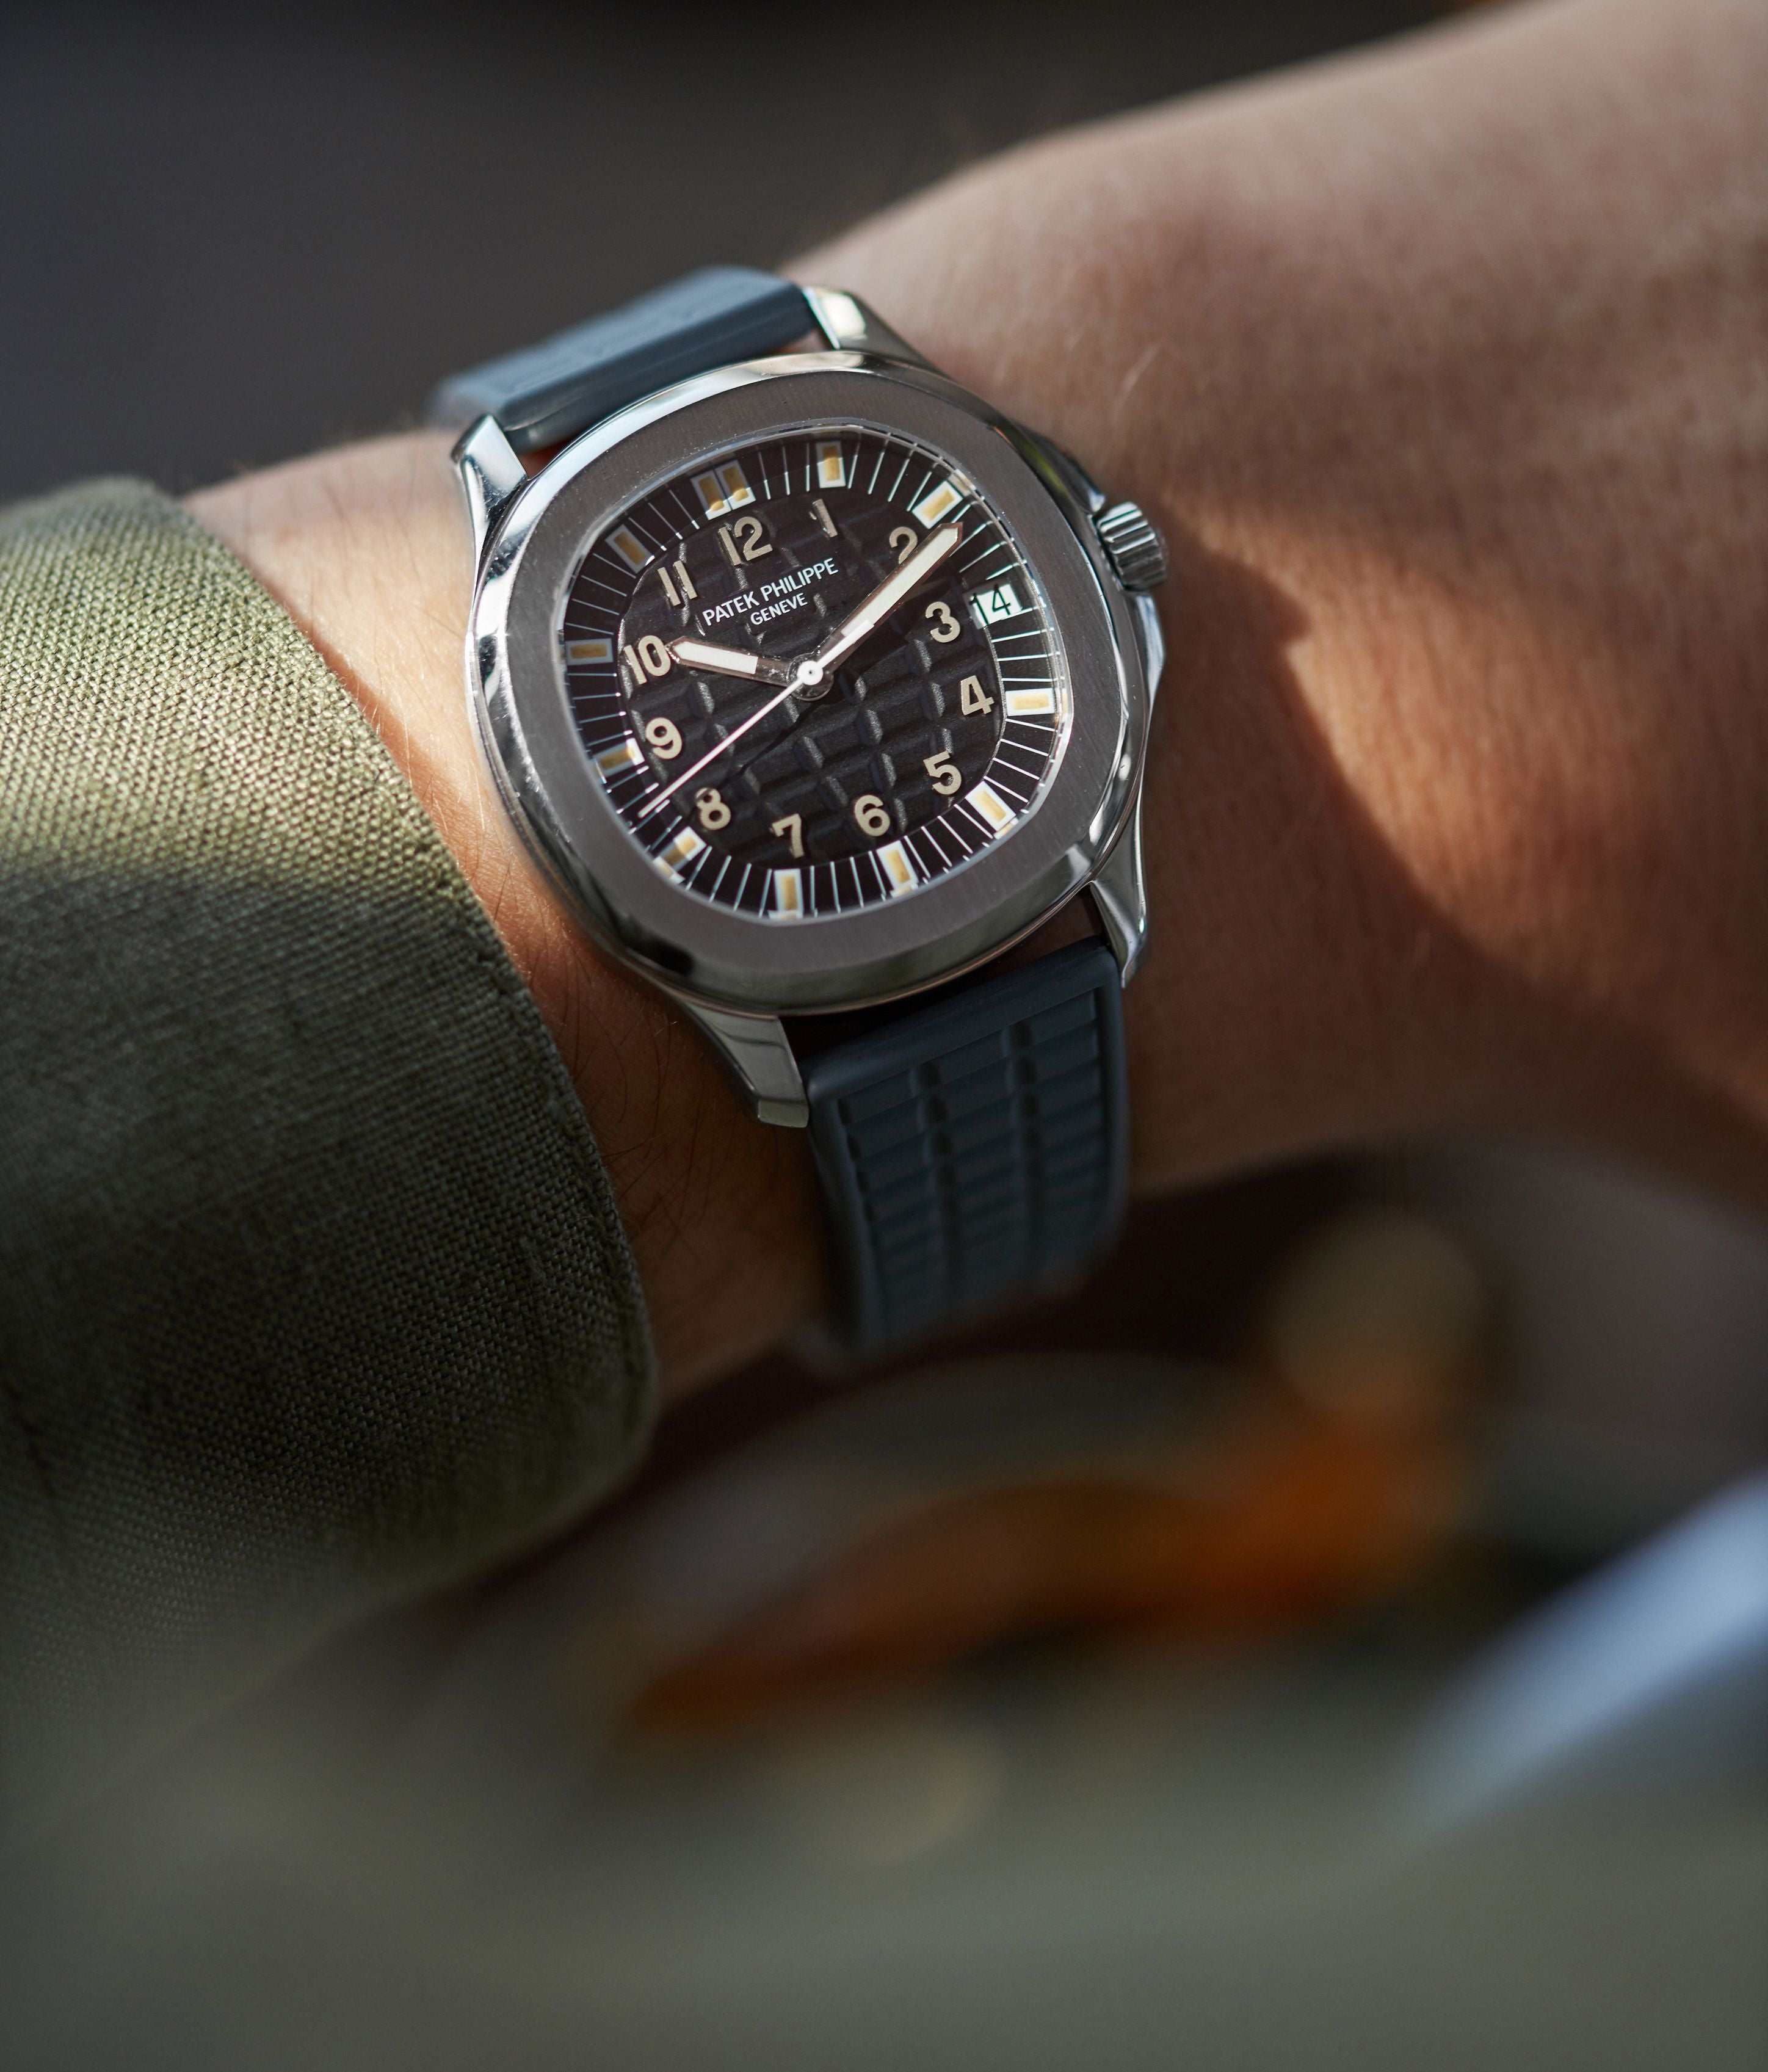 Patek Philippe 5065A Aquanaut in stainless steel and tritium lume one the wrist for A Collected Man London